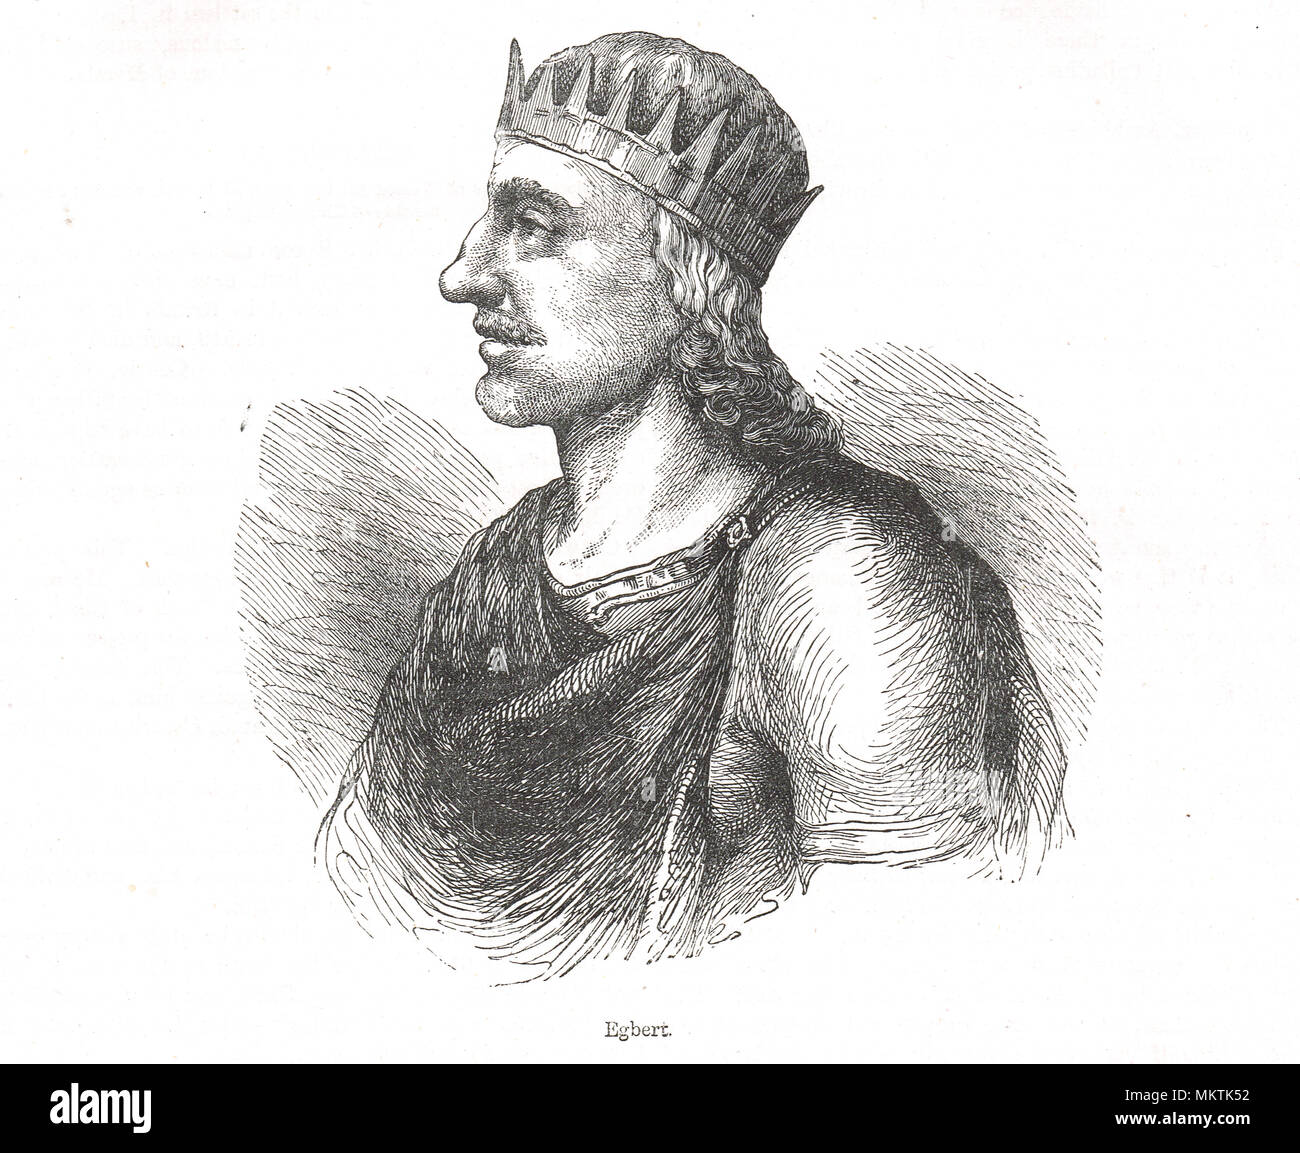 Egbert, or Ecgberht, King of Wessex who ruled from 802-839.  (Also spelt Ecgbert or Ecgbriht) - Stock Image